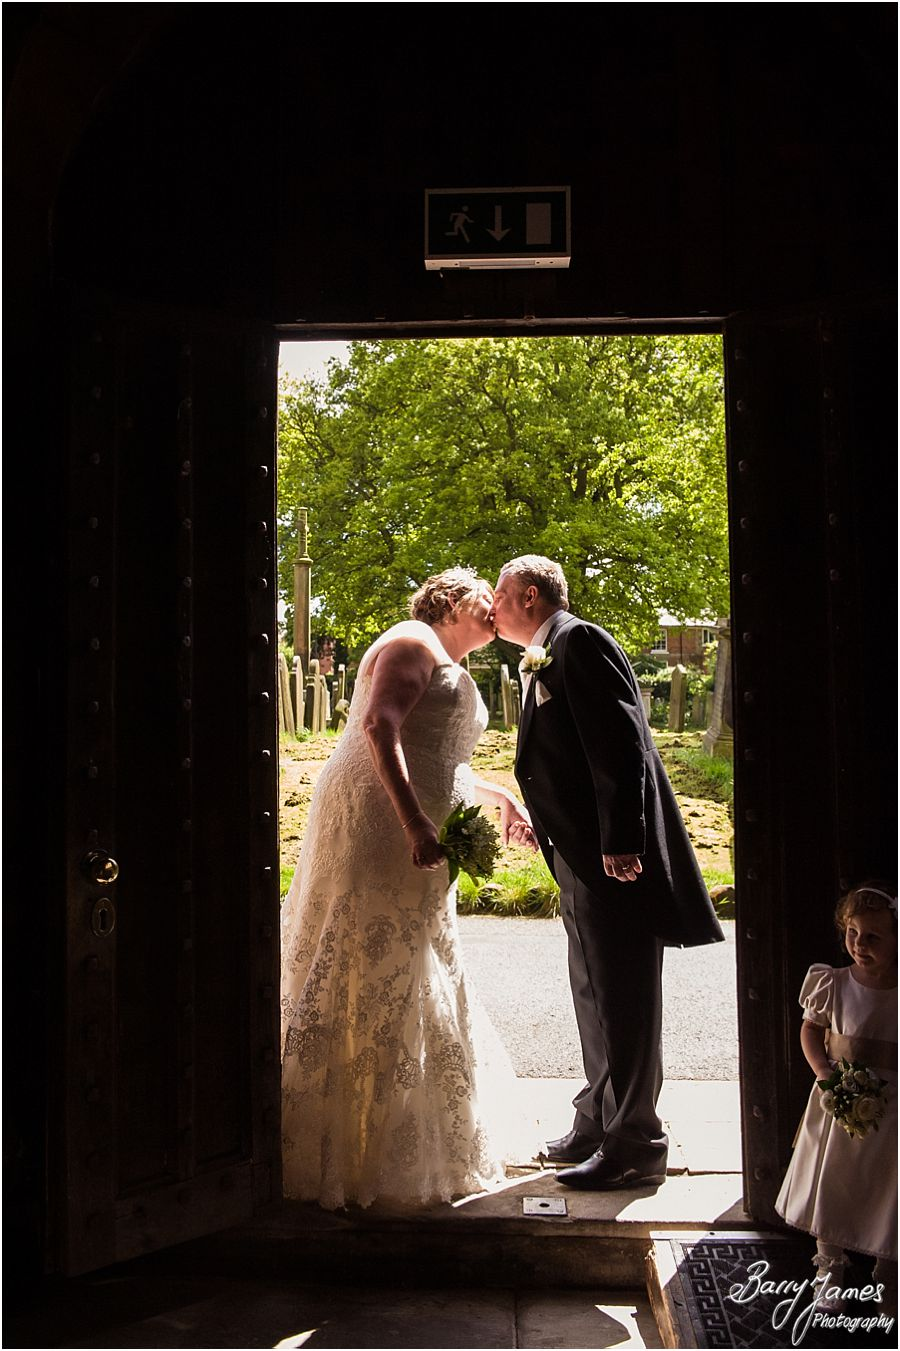 Wedding photographs at St Michaels Church in Penkridge by Stafford Wedding Photographer Barry James